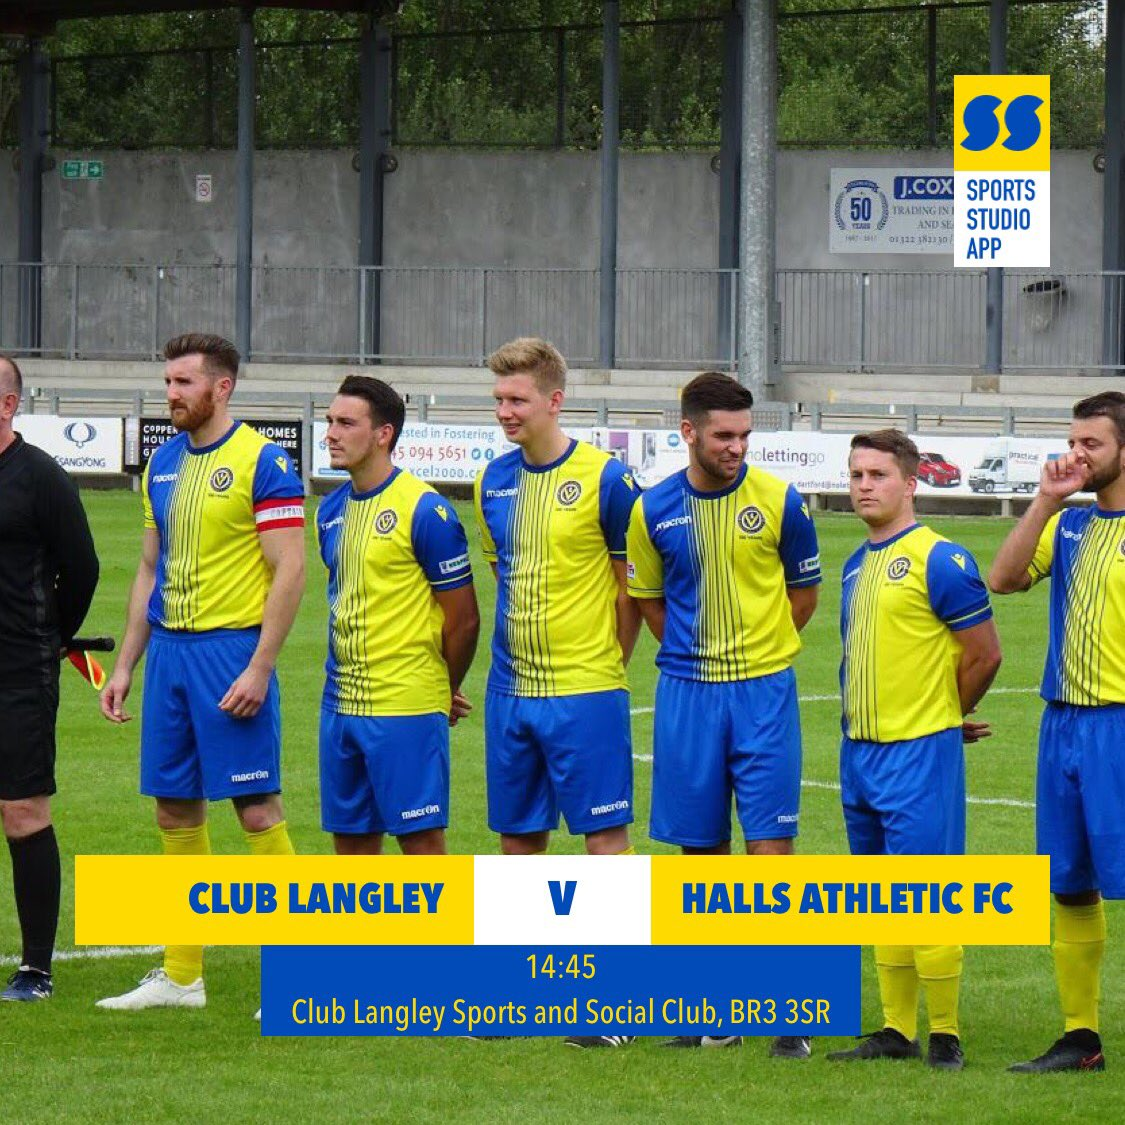 test Twitter Media - First team travel to @ClubLangleyFC today and looking to make it 7 wins on the bounce! In the home tie first team came out 2-0 winners but a very tight game. Expecting a cracker today 💛💙💛💙#HAFC #100thseason https://t.co/JmEFEPcL5k